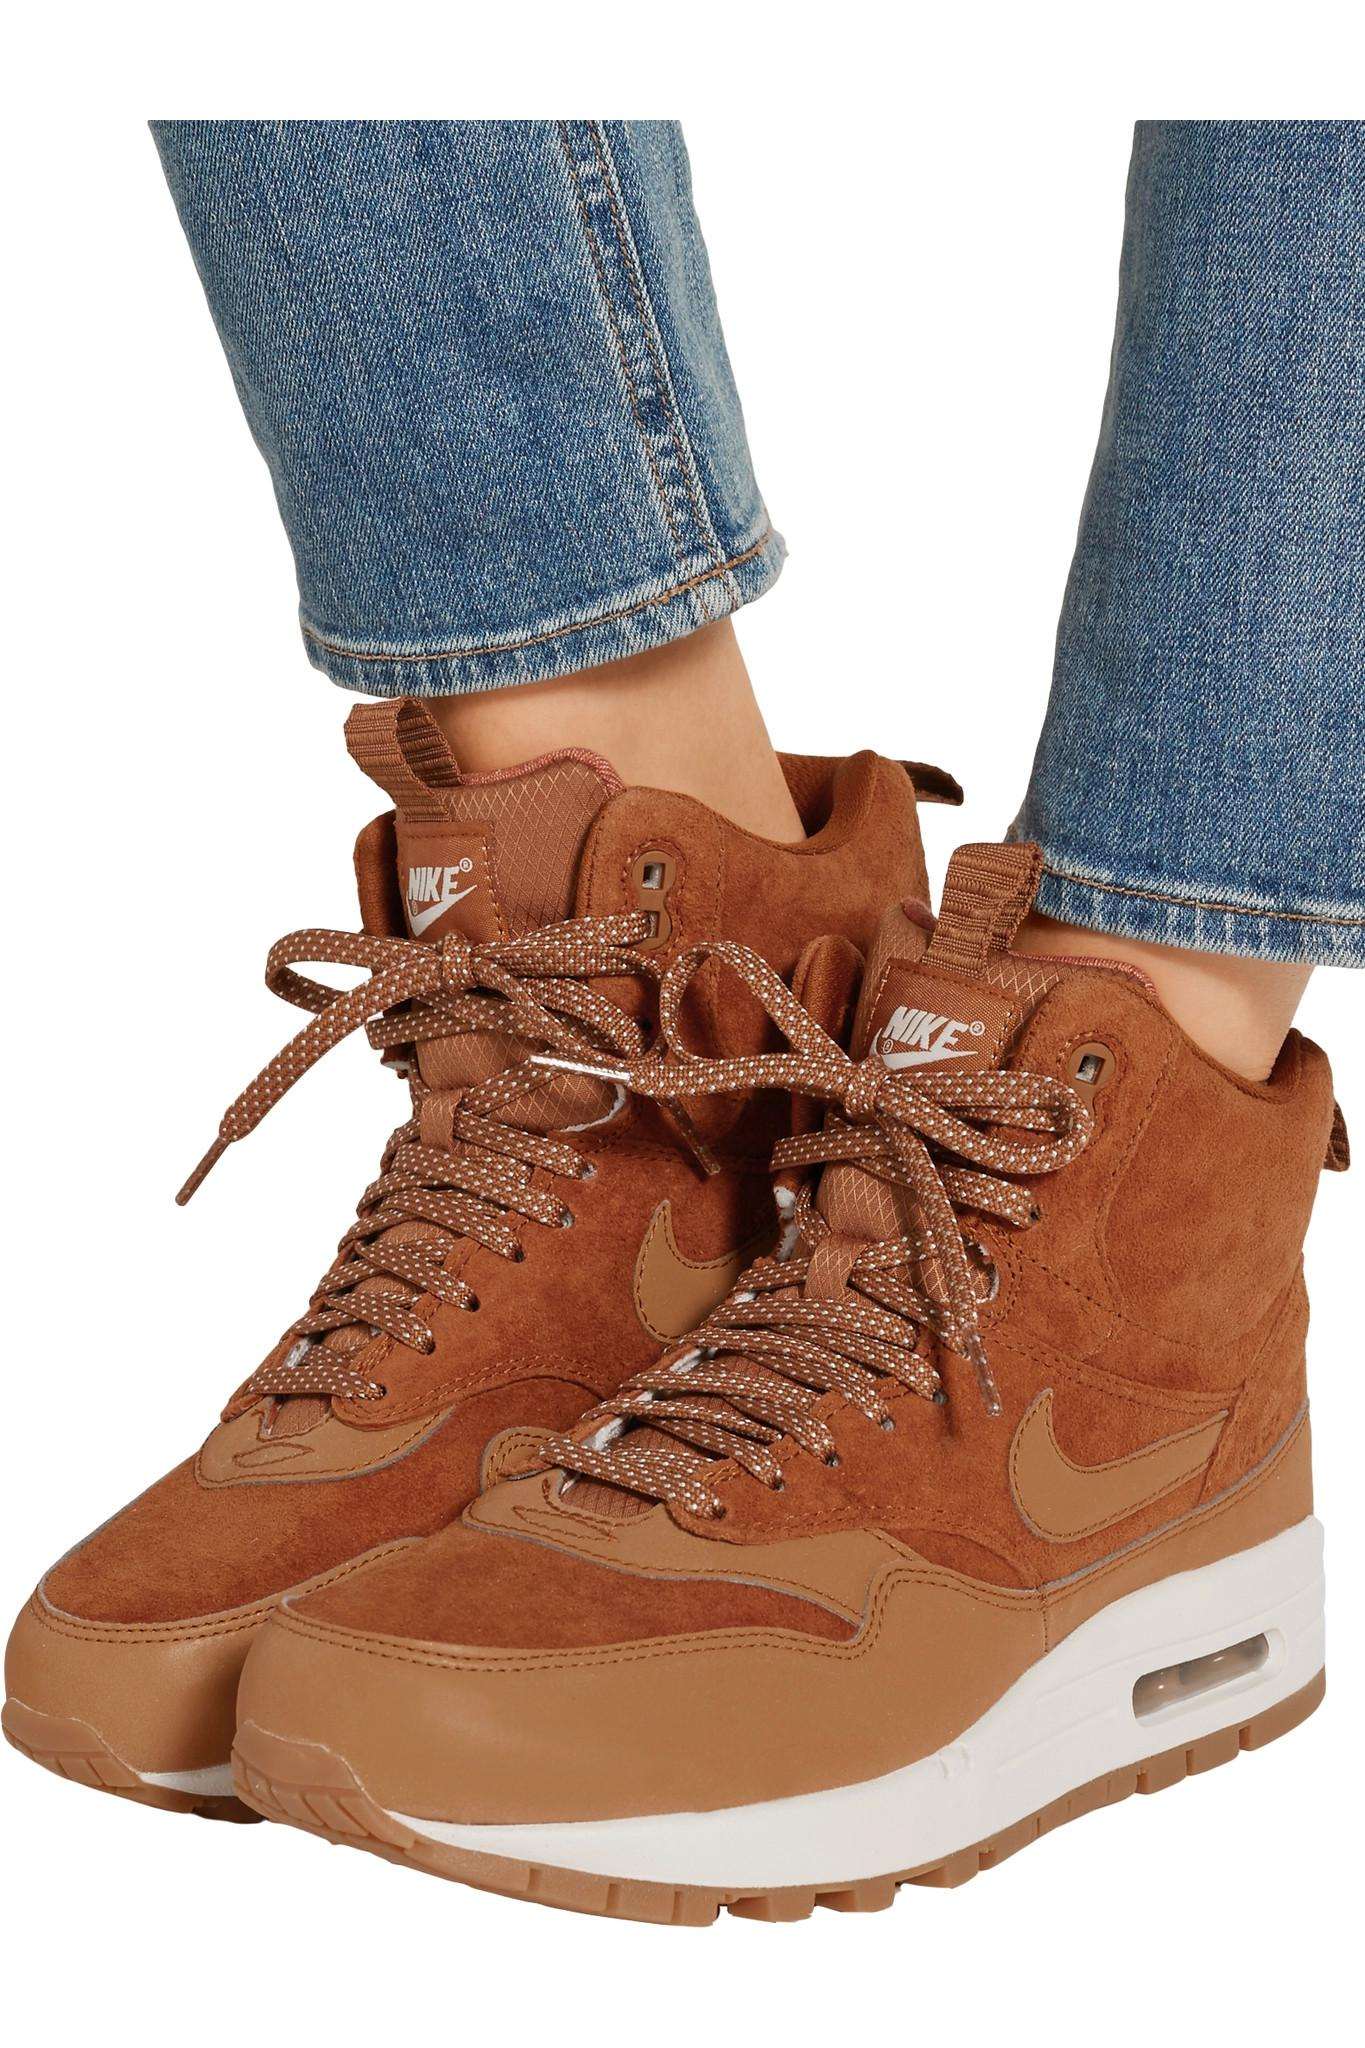 Nike - Air Max 1 Suede And Leather High-top Sneakers - Tan in Brown